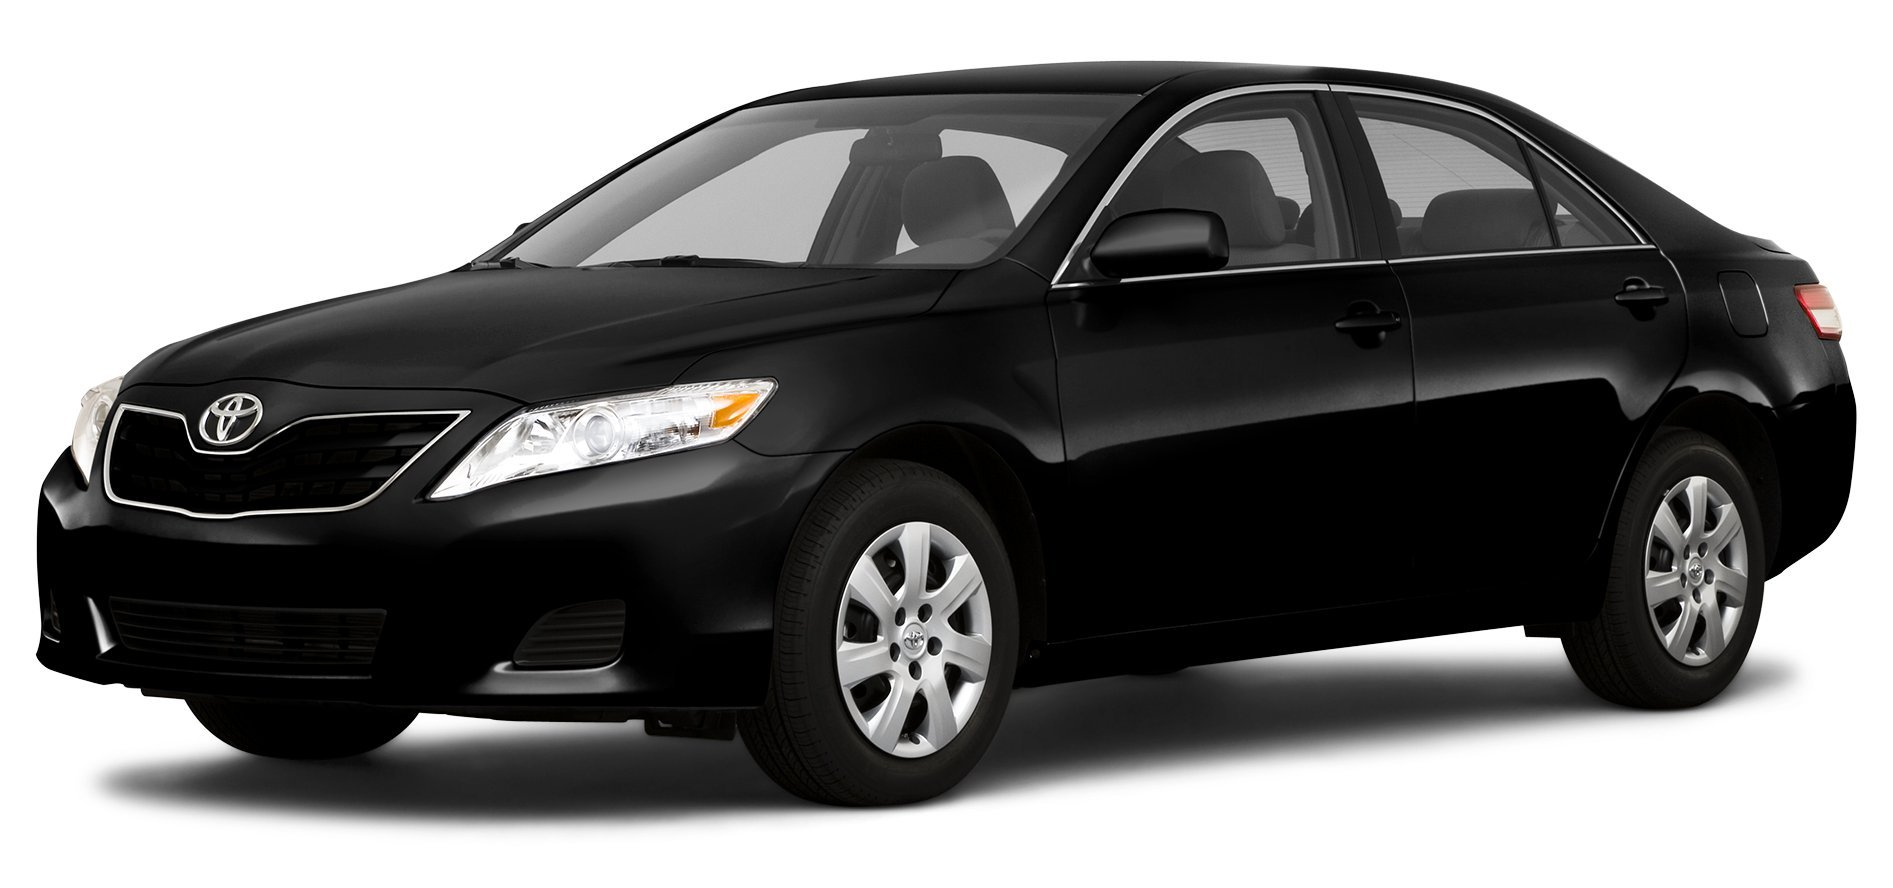 2010 toyota camry reviews images and specs. Black Bedroom Furniture Sets. Home Design Ideas